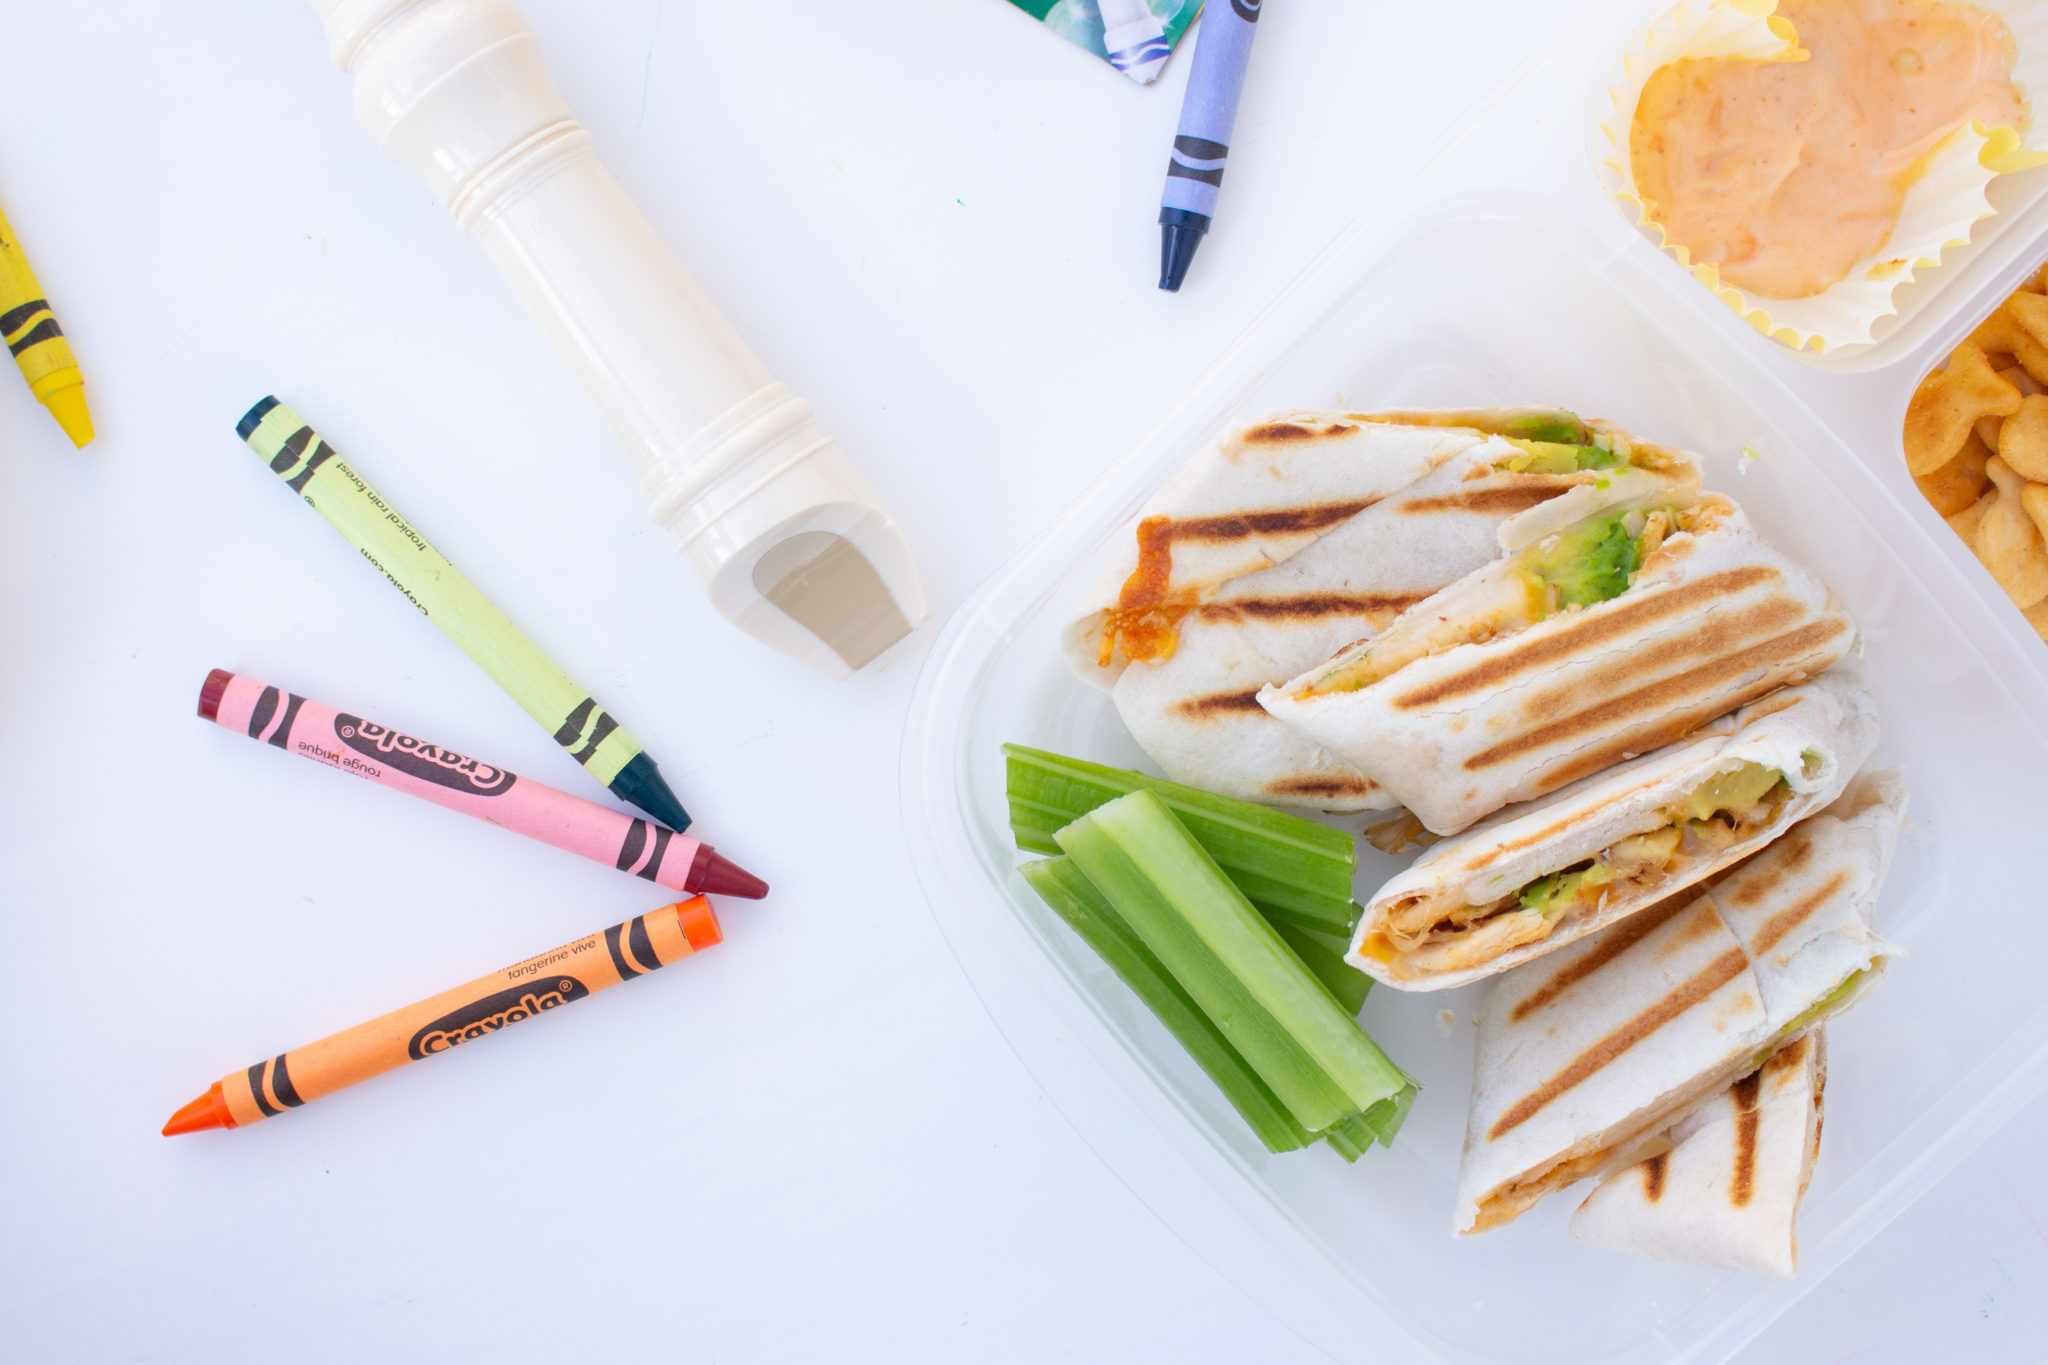 Super Simple Back To School Lunch Idea Using A Panini Maker